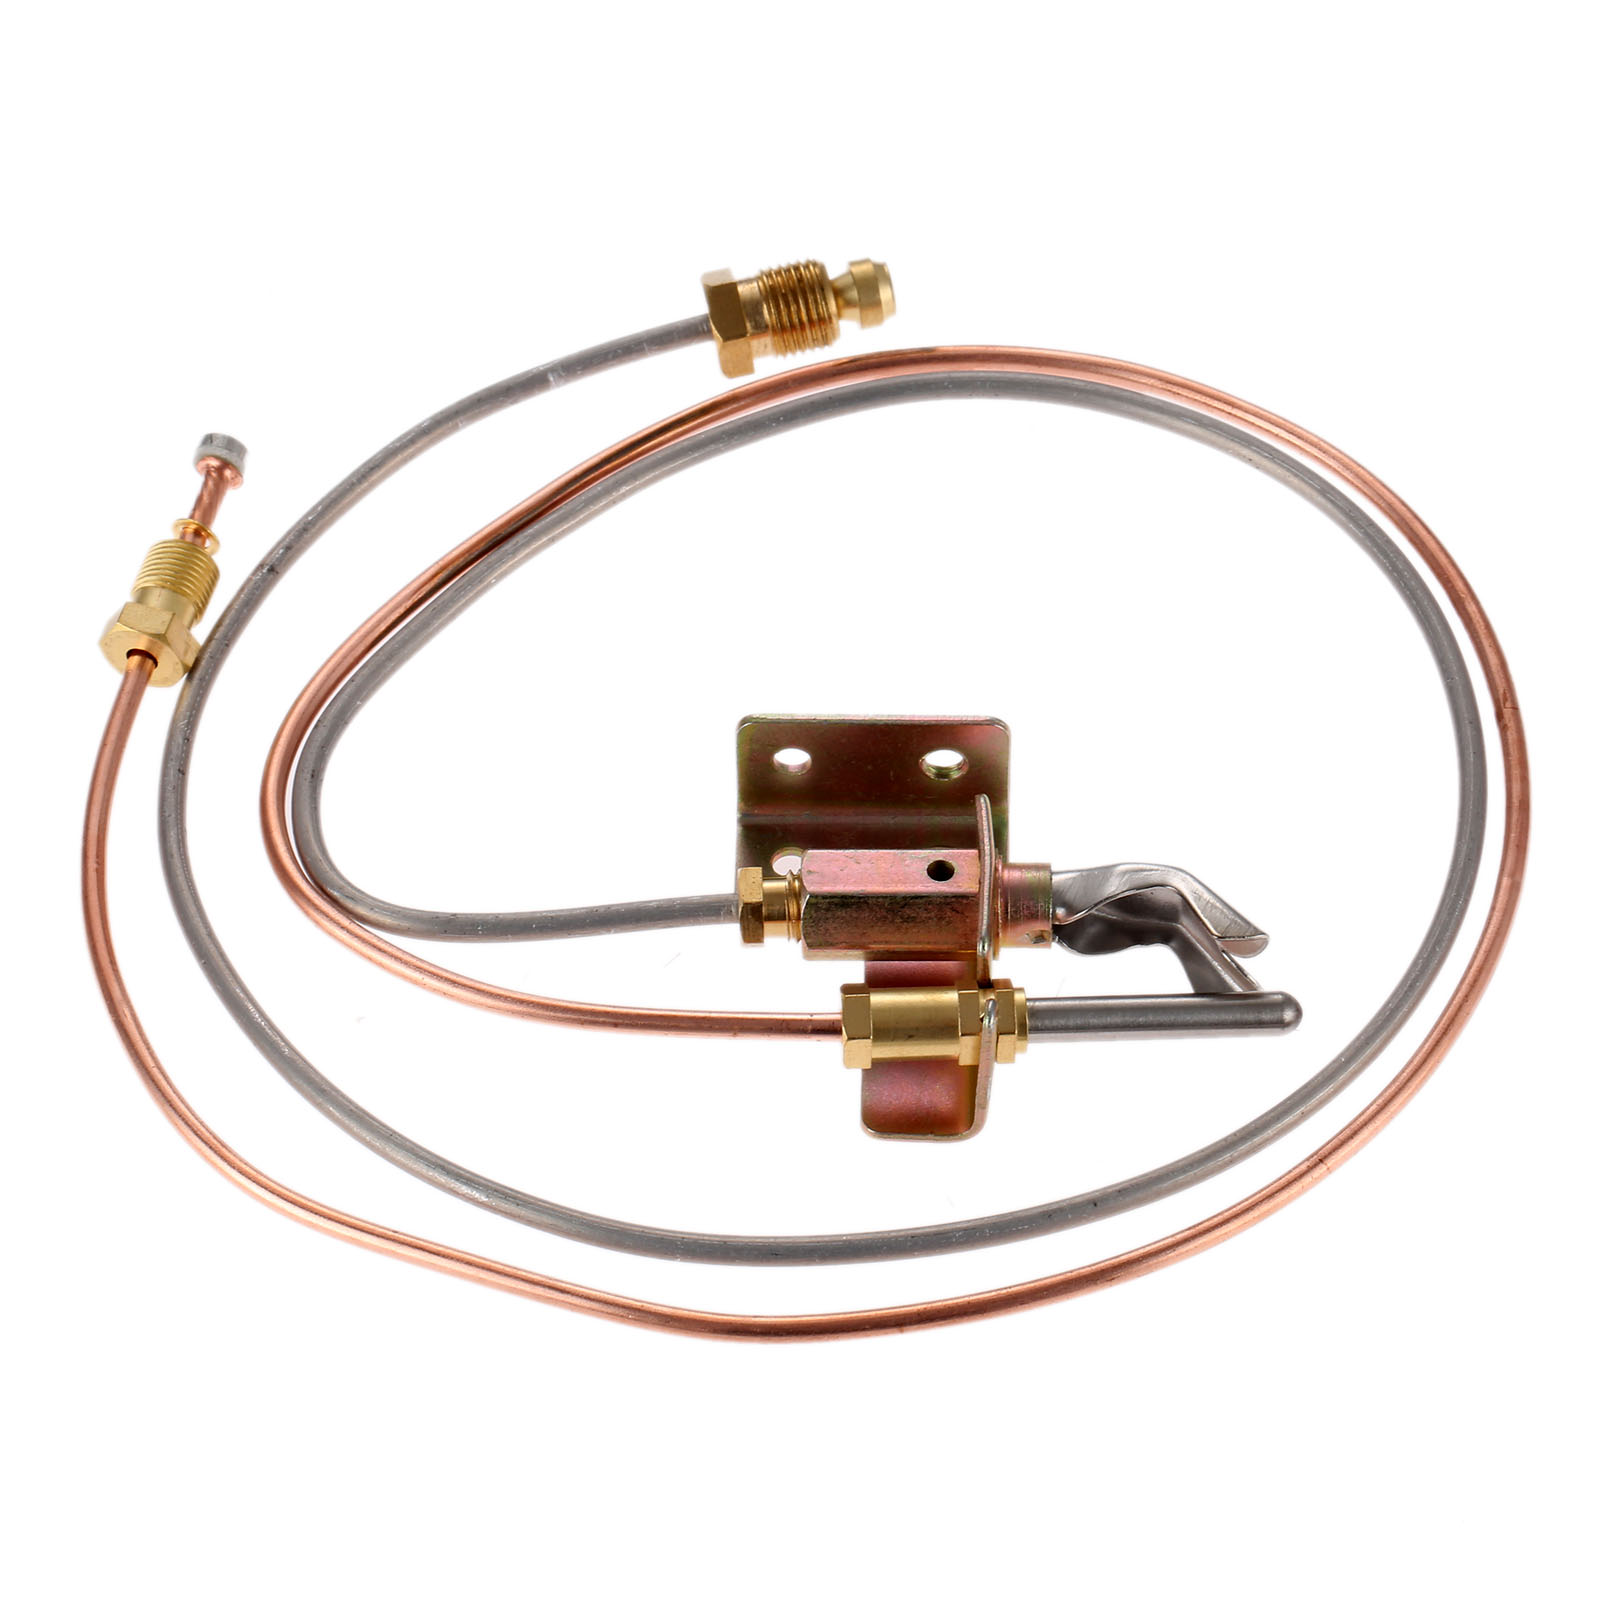 Water Heater Pilot Burner With Pilot Thermocouple And Tubing LP Propane